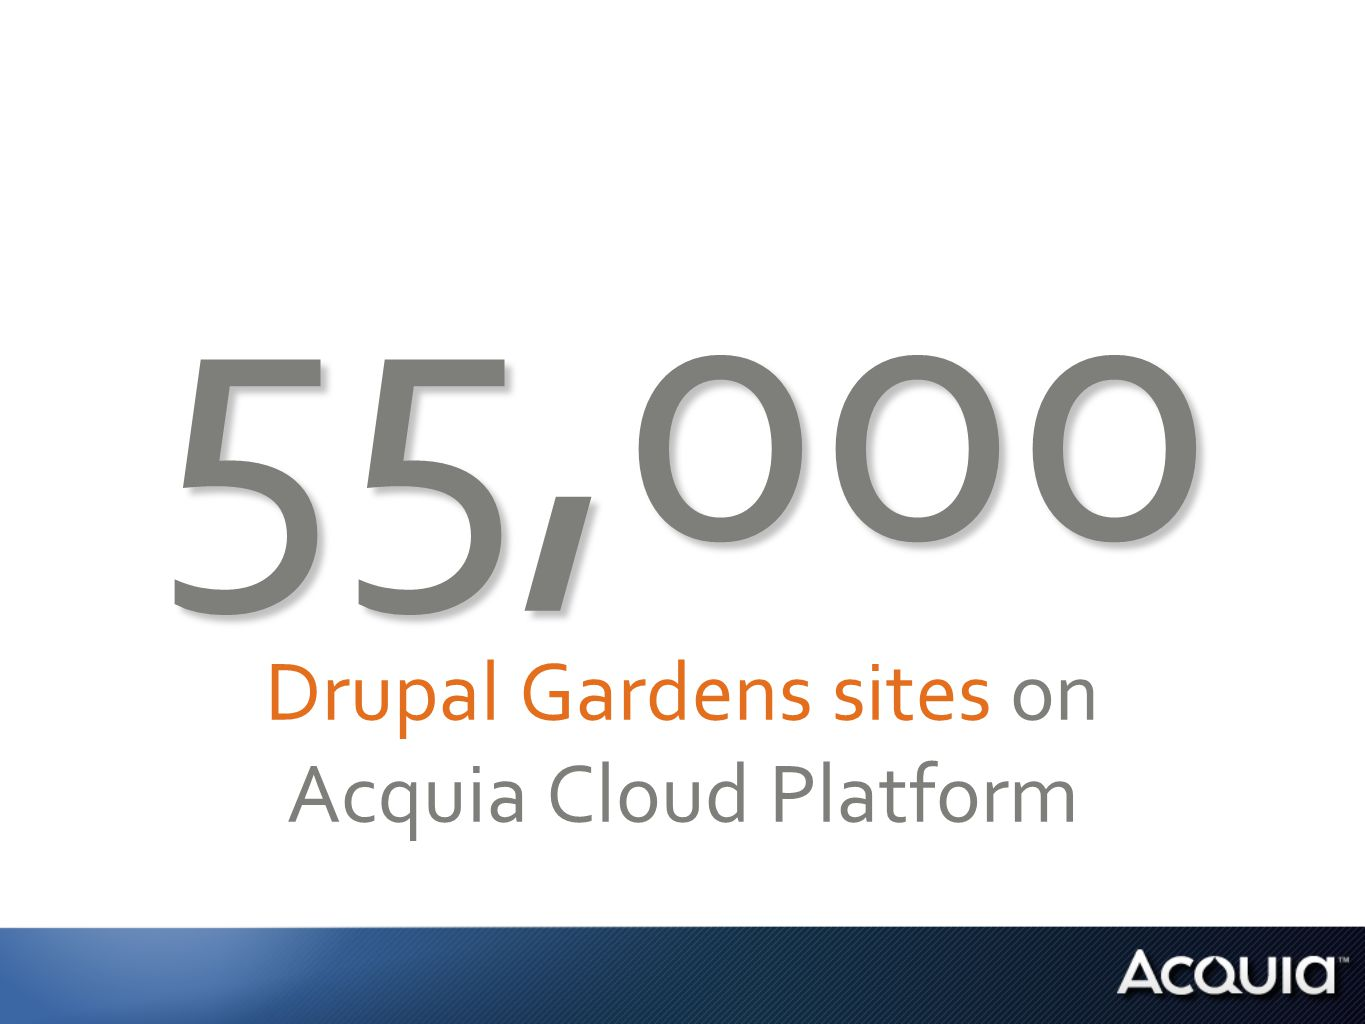 55,000 55,000 Drupal Gardens sites on Acquia Cloud Platform